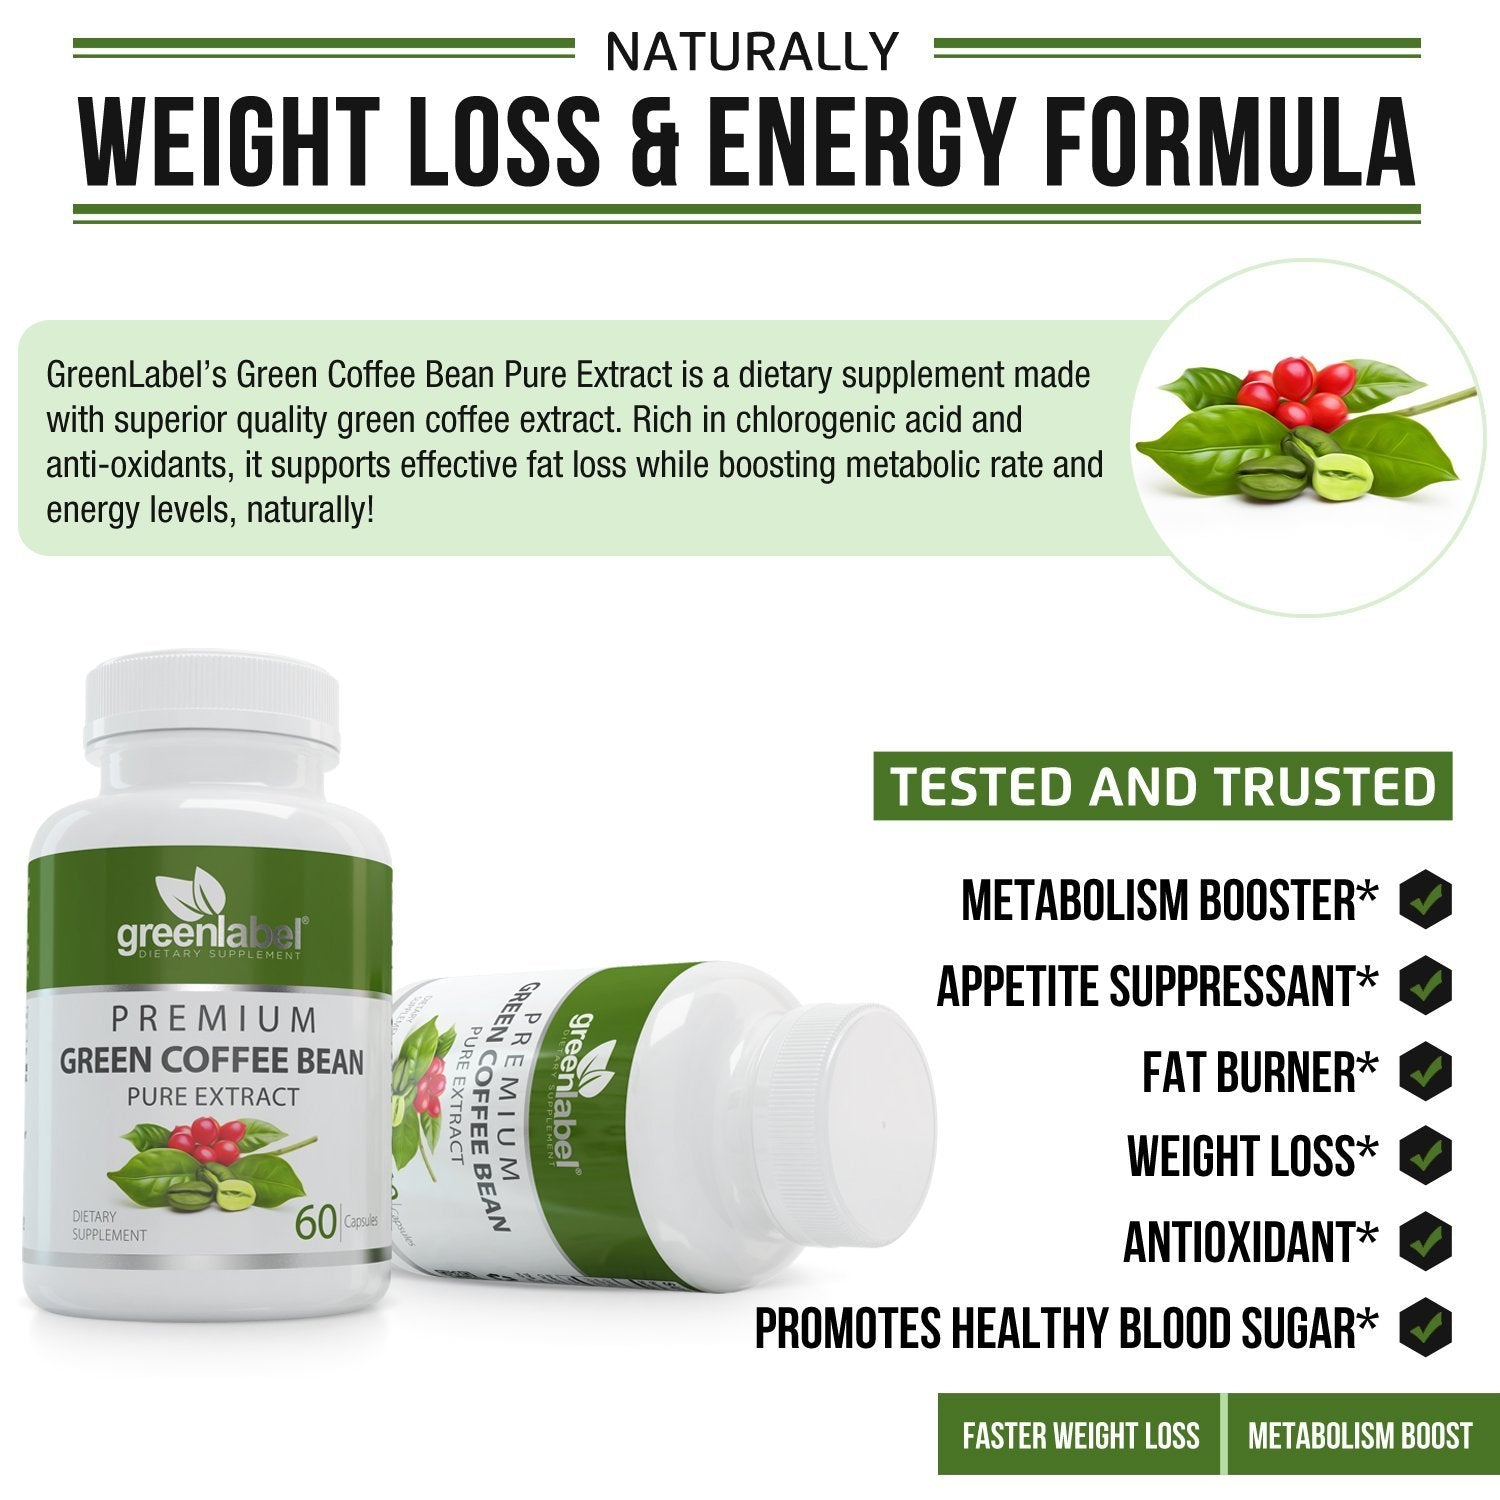 Garcinia cambogia filipino celebrities